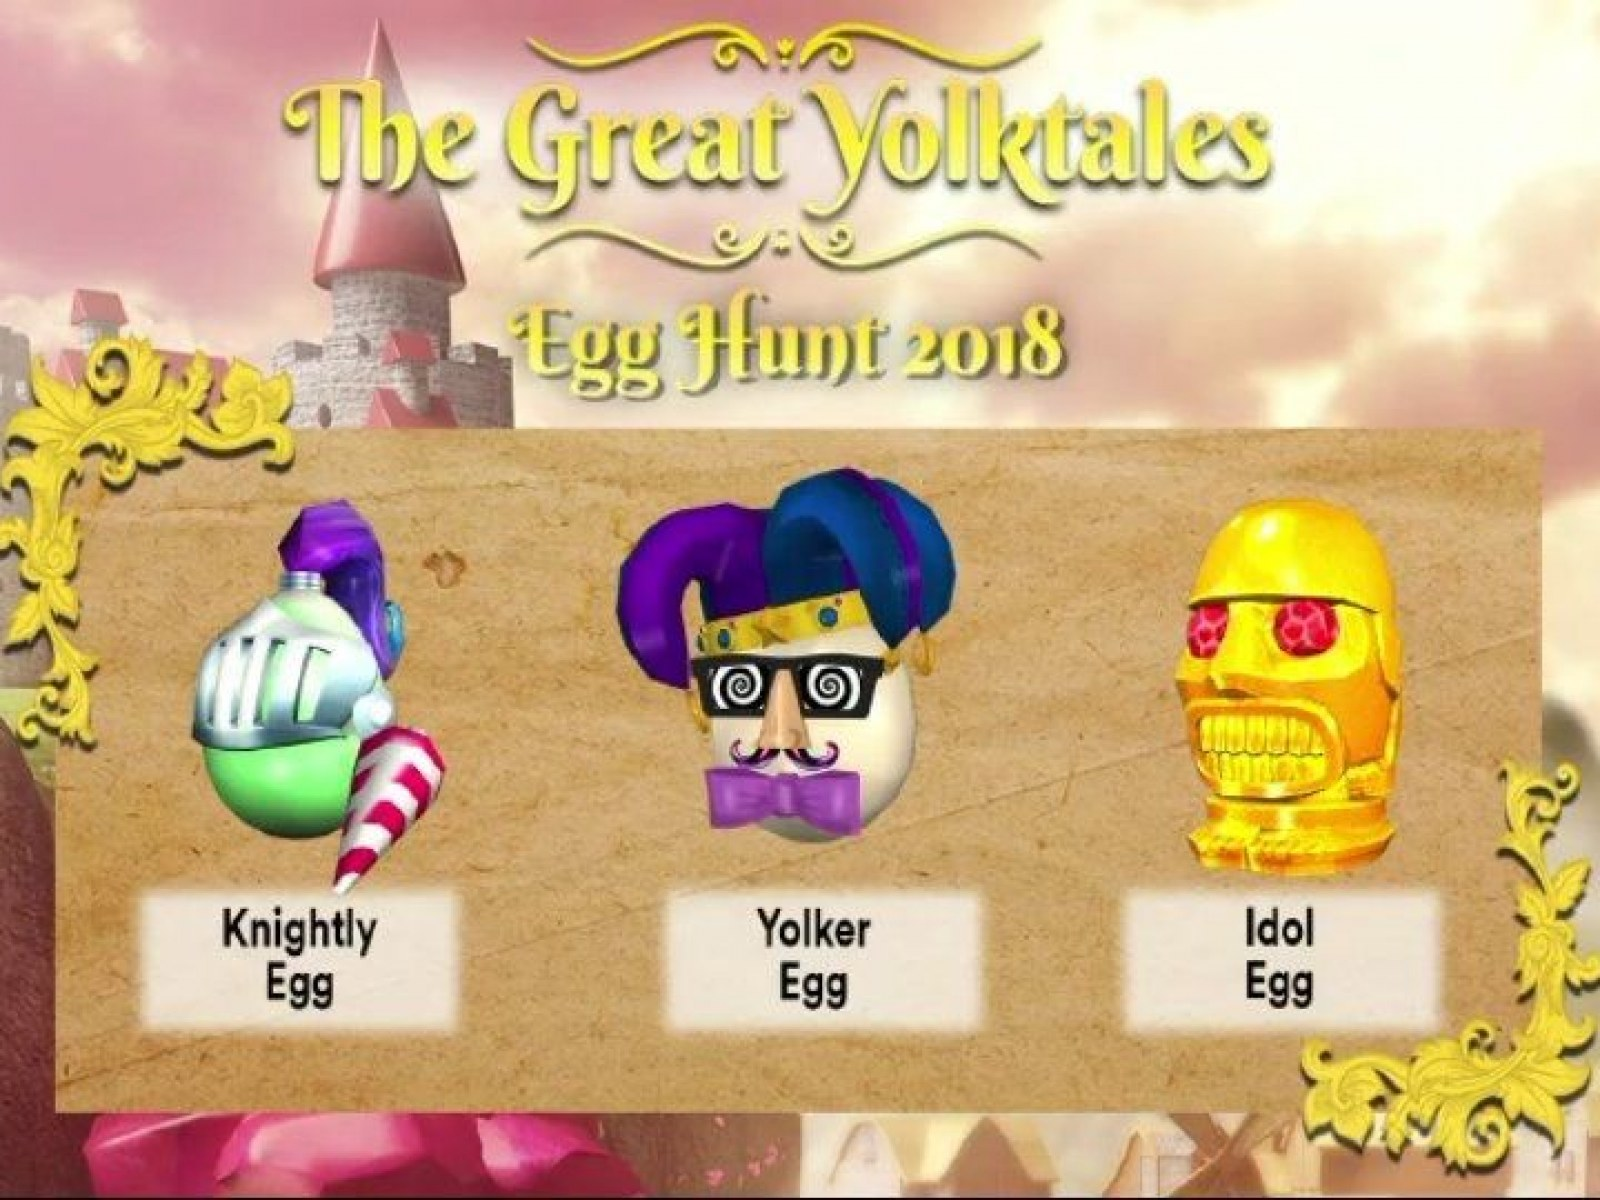 Roblox' Egg Hunt 2018: All Eggs, Hats, Badges And Other Items Leaked